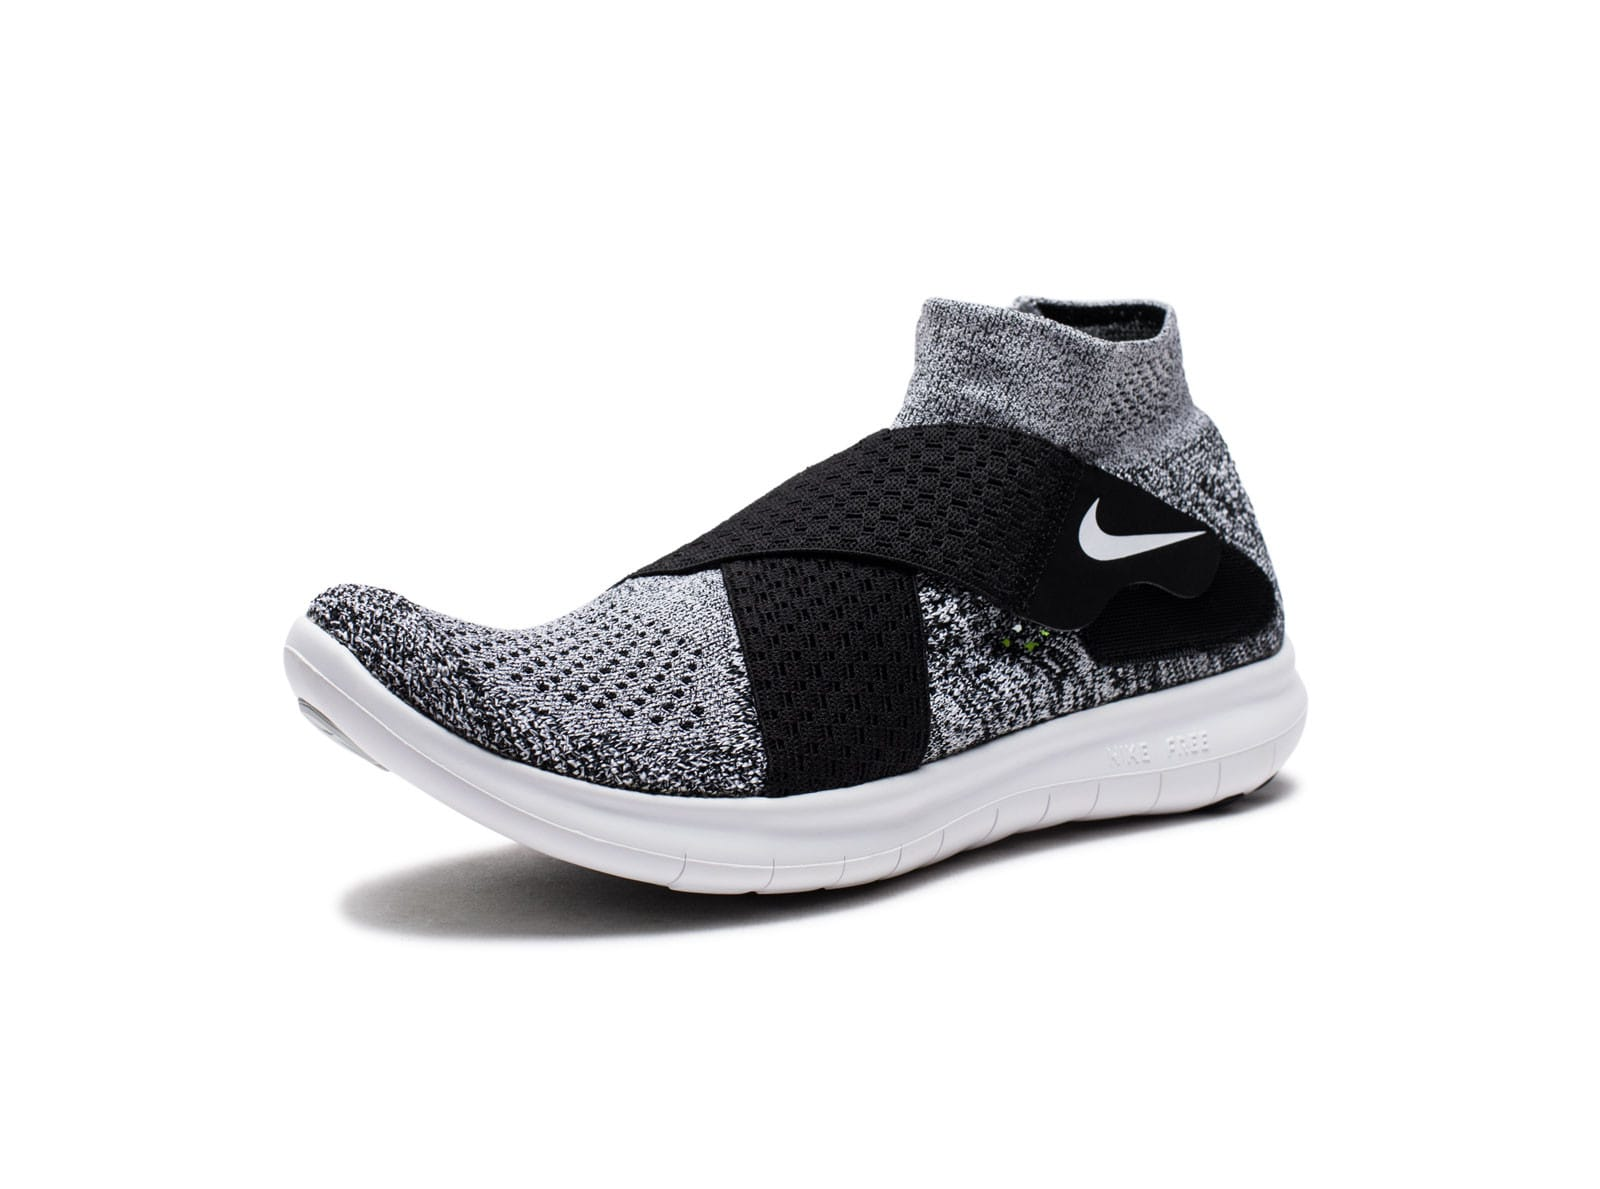 100% authentic 07019 20bde WOMEN'S FREE RN MOTION FLYKNIT 2017 - BK/WH/PUREPLATINUM ...